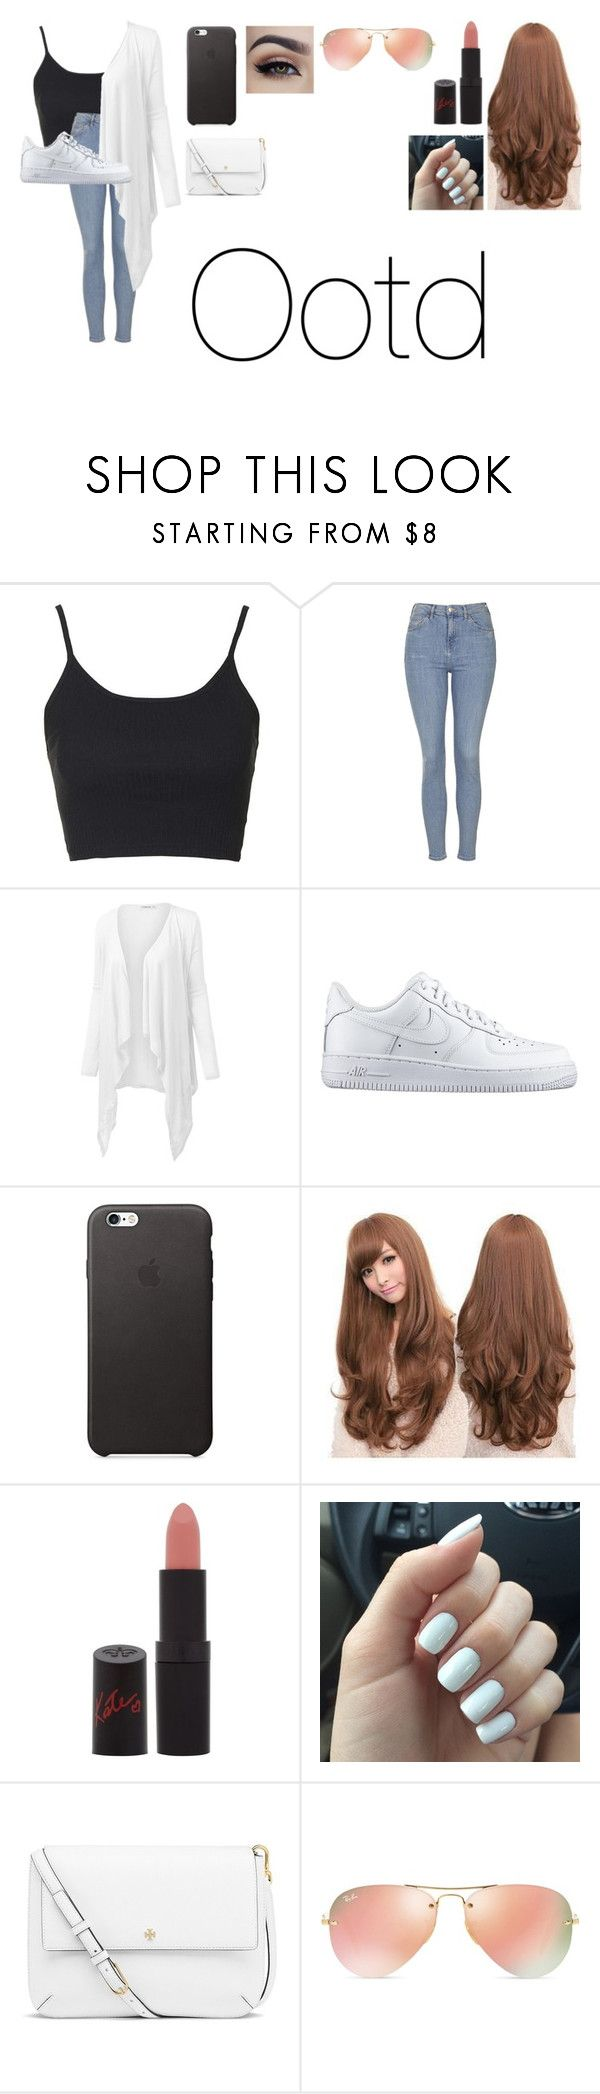 """""""Untitled #1339"""" by phaniehoran ❤ liked on Polyvore featuring Topshop, J.TOMSON, NIKE, Sankins, Rimmel, Tory Burch, Ray-Ban, women's clothing, women and female"""